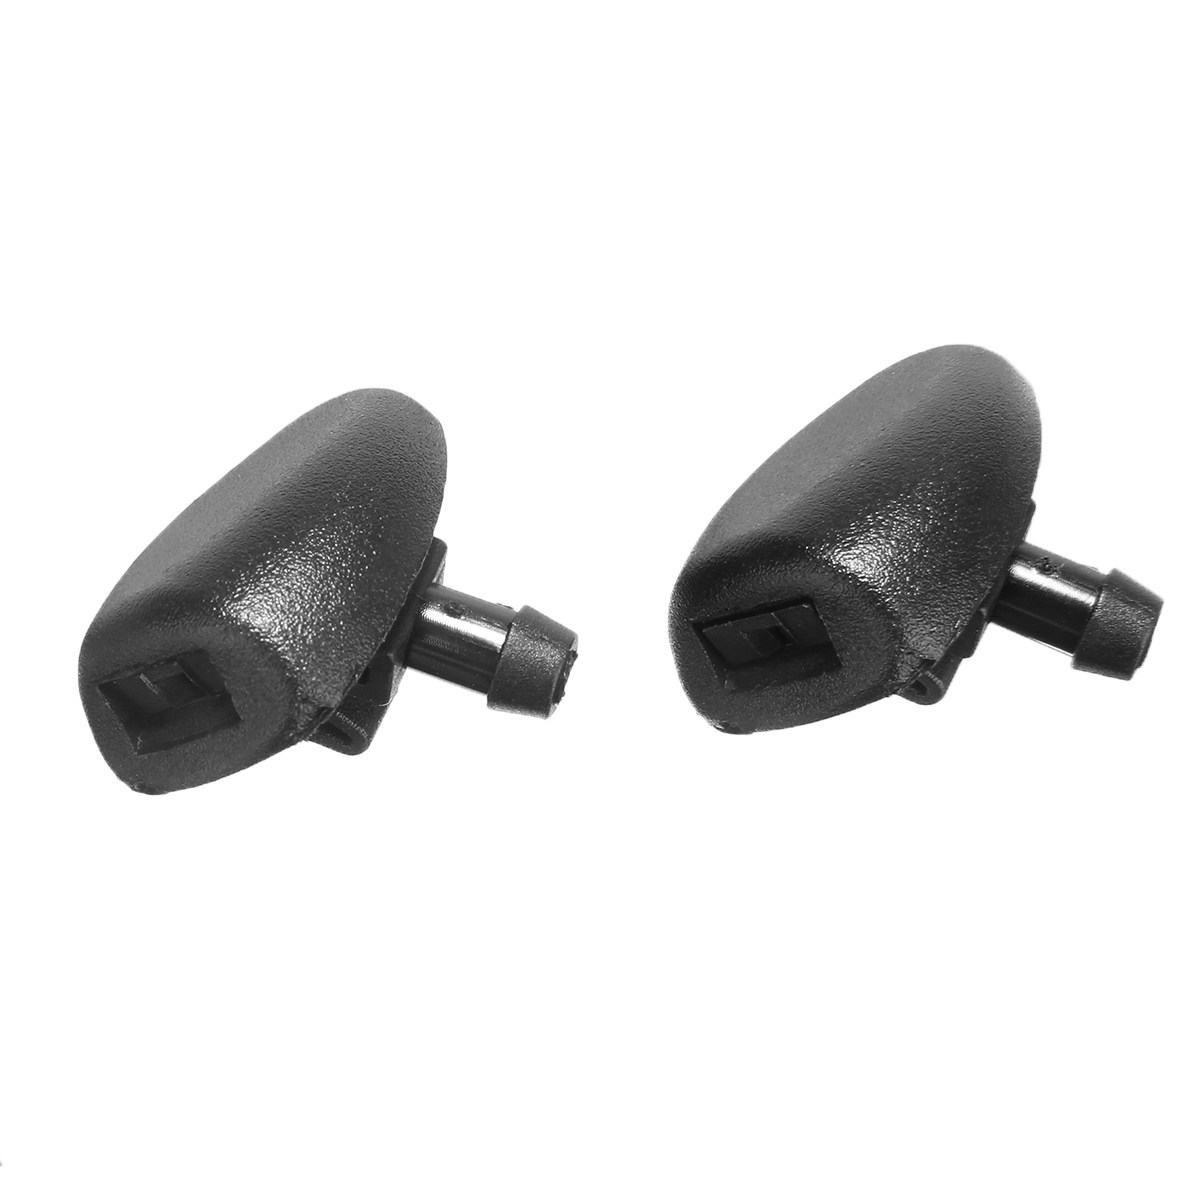 For Peugeot 407 206 2Pcs/set Car Front Windshield Wiper Washer Jet Nozzle High Quality Washer Nozzle Replacement